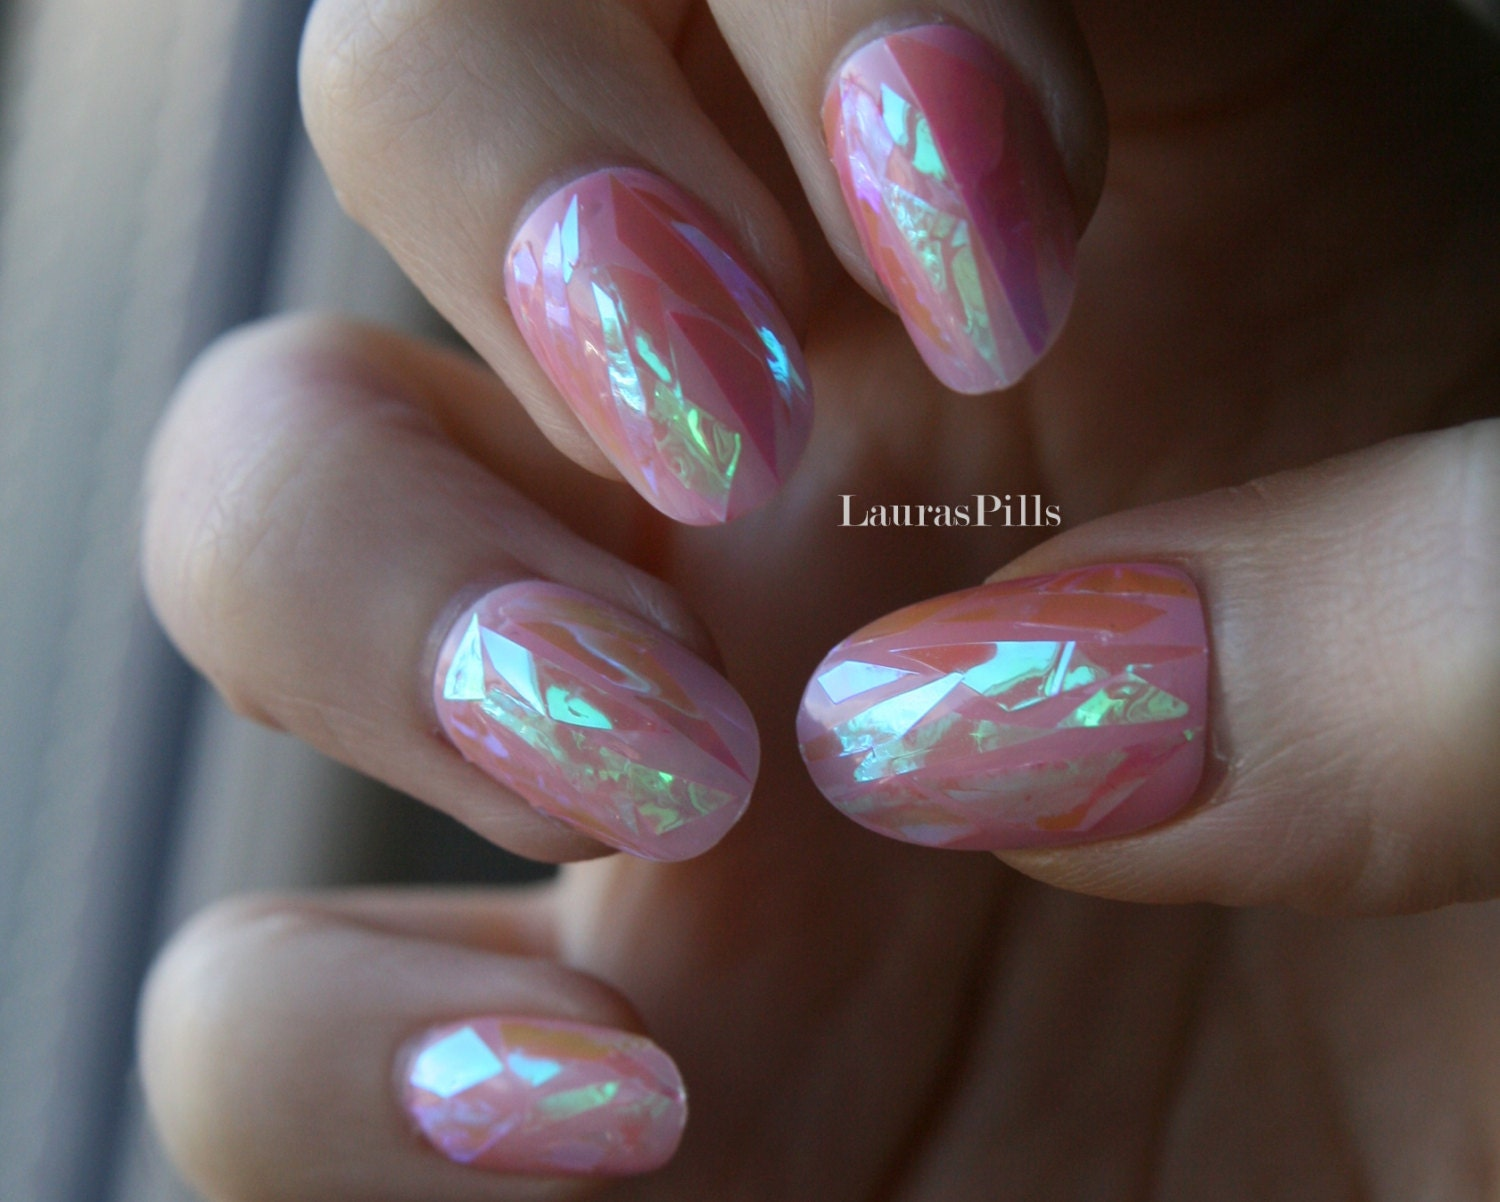 Shattered glass sheer pink press on nails Broken glass nails